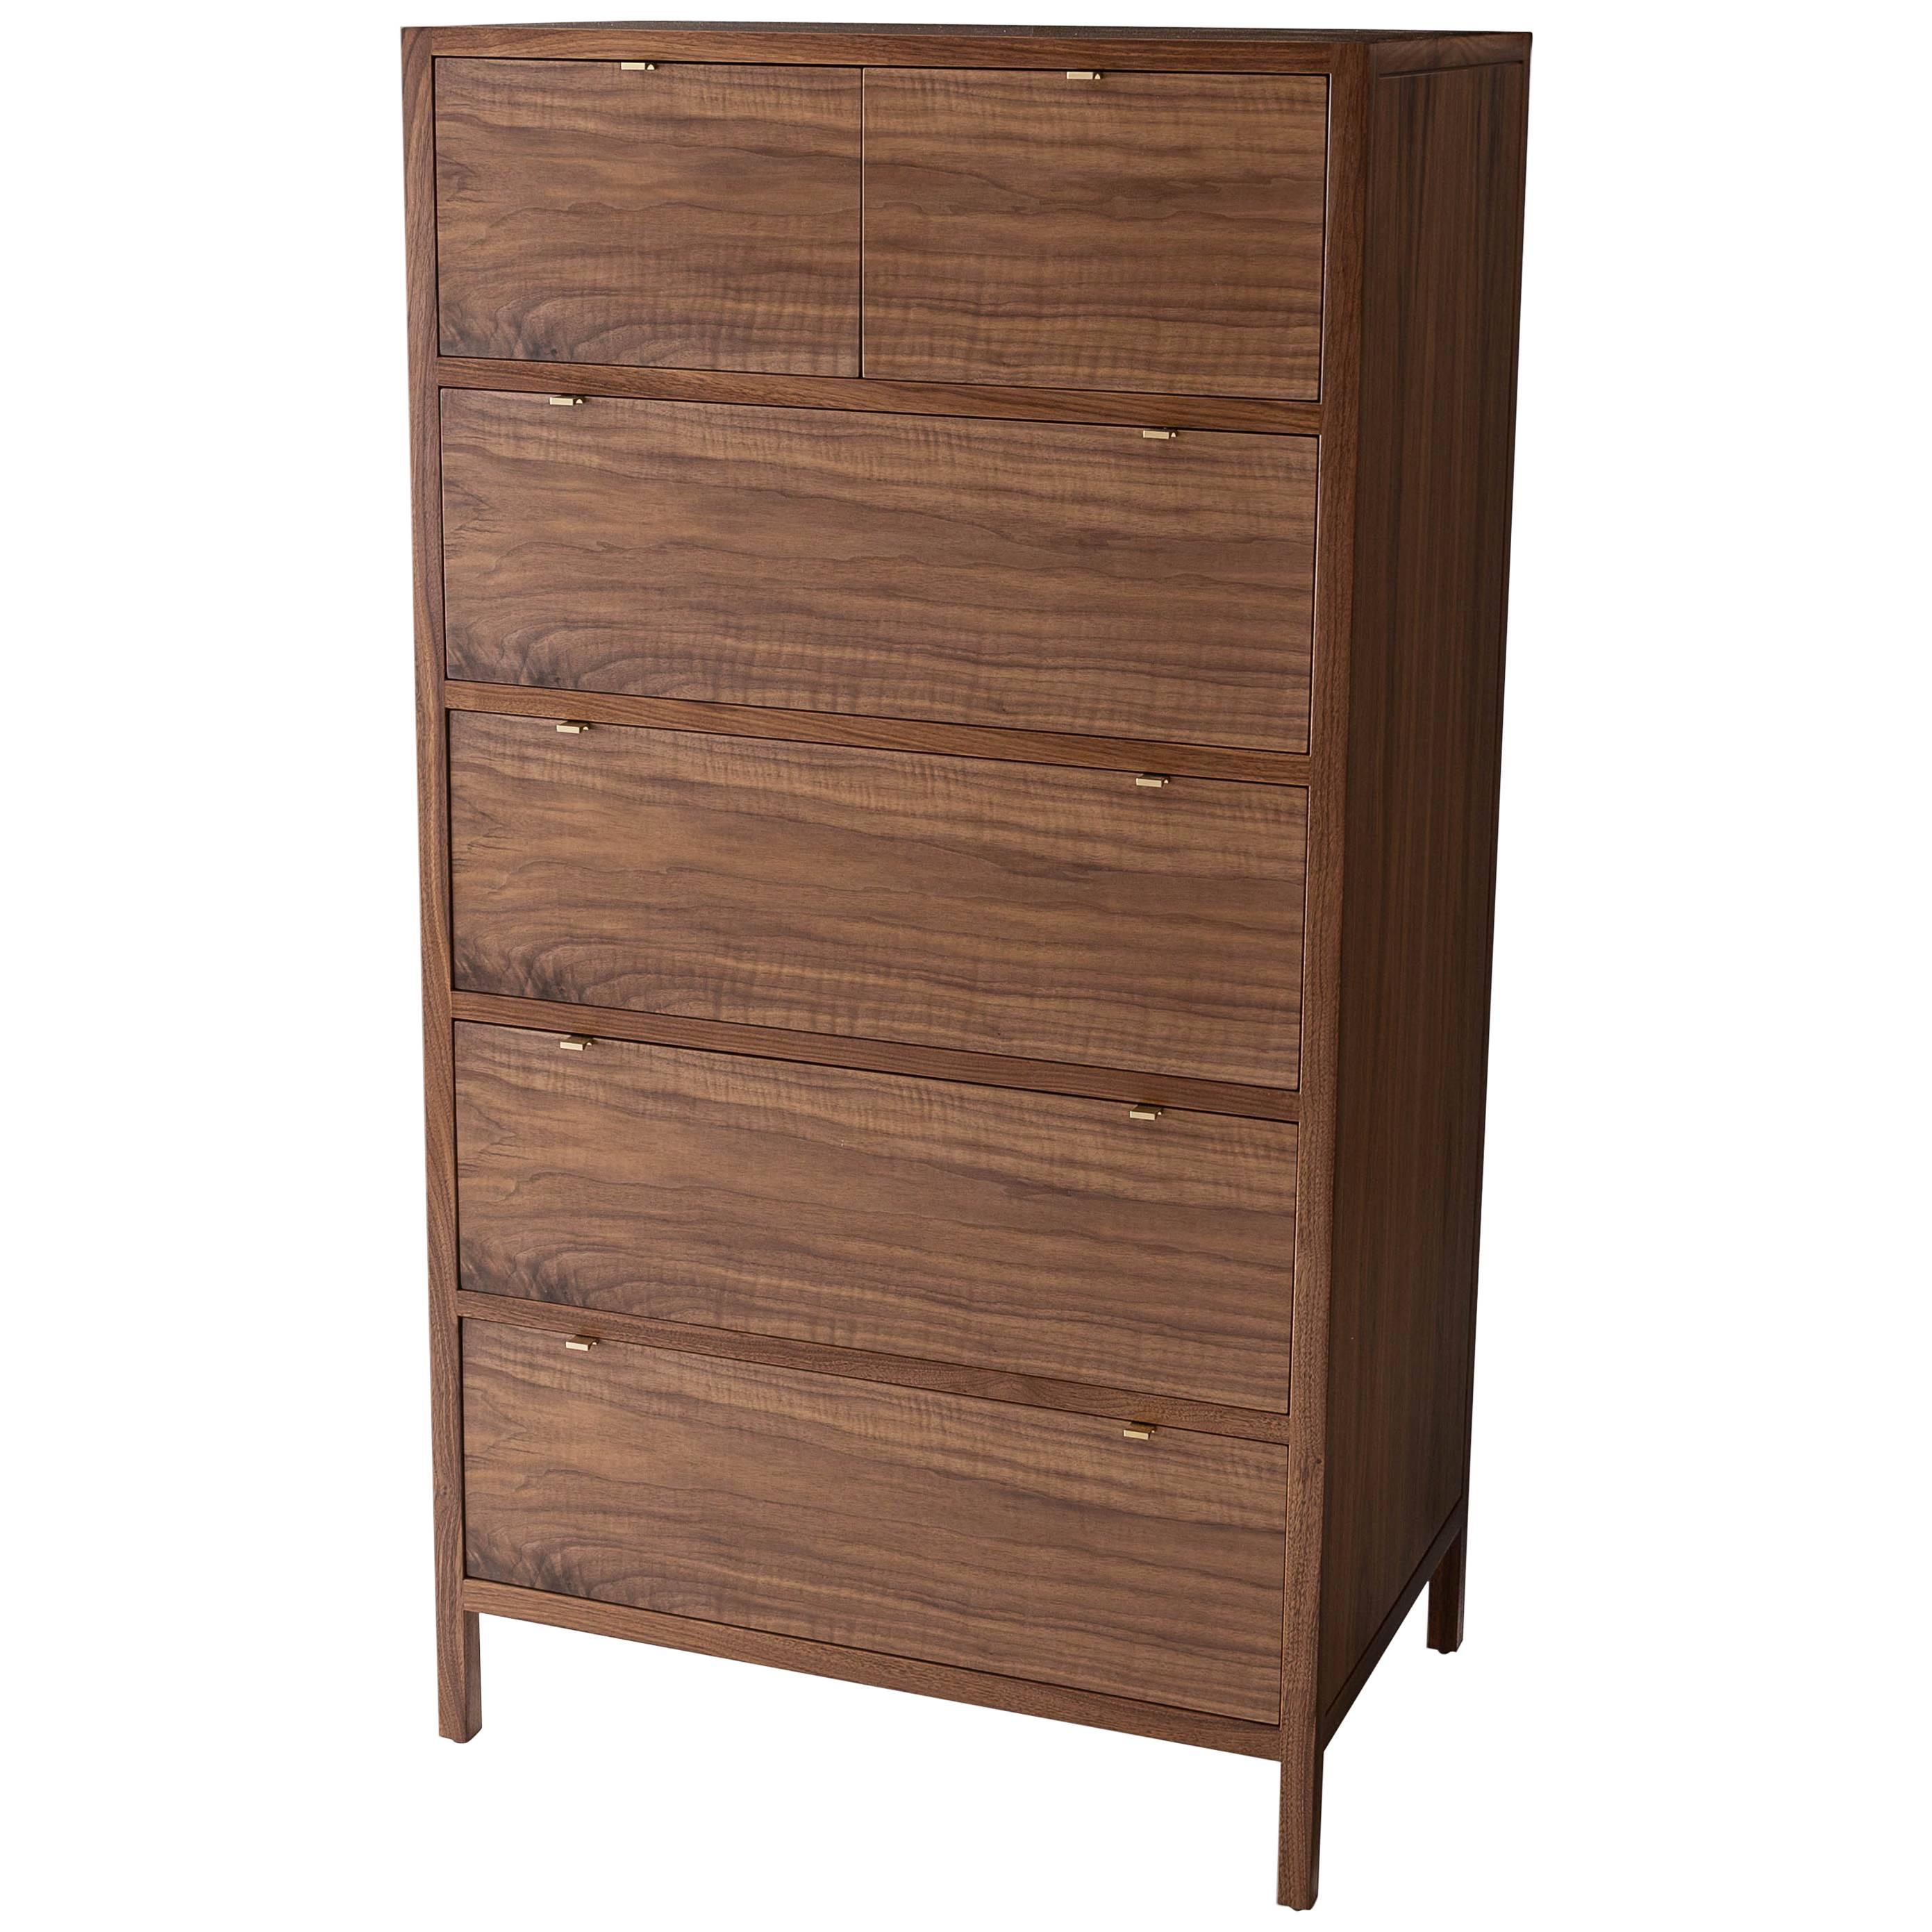 Laska Dresser, Figured Walnut, Six Drawers, Brass Pulls, Customizable